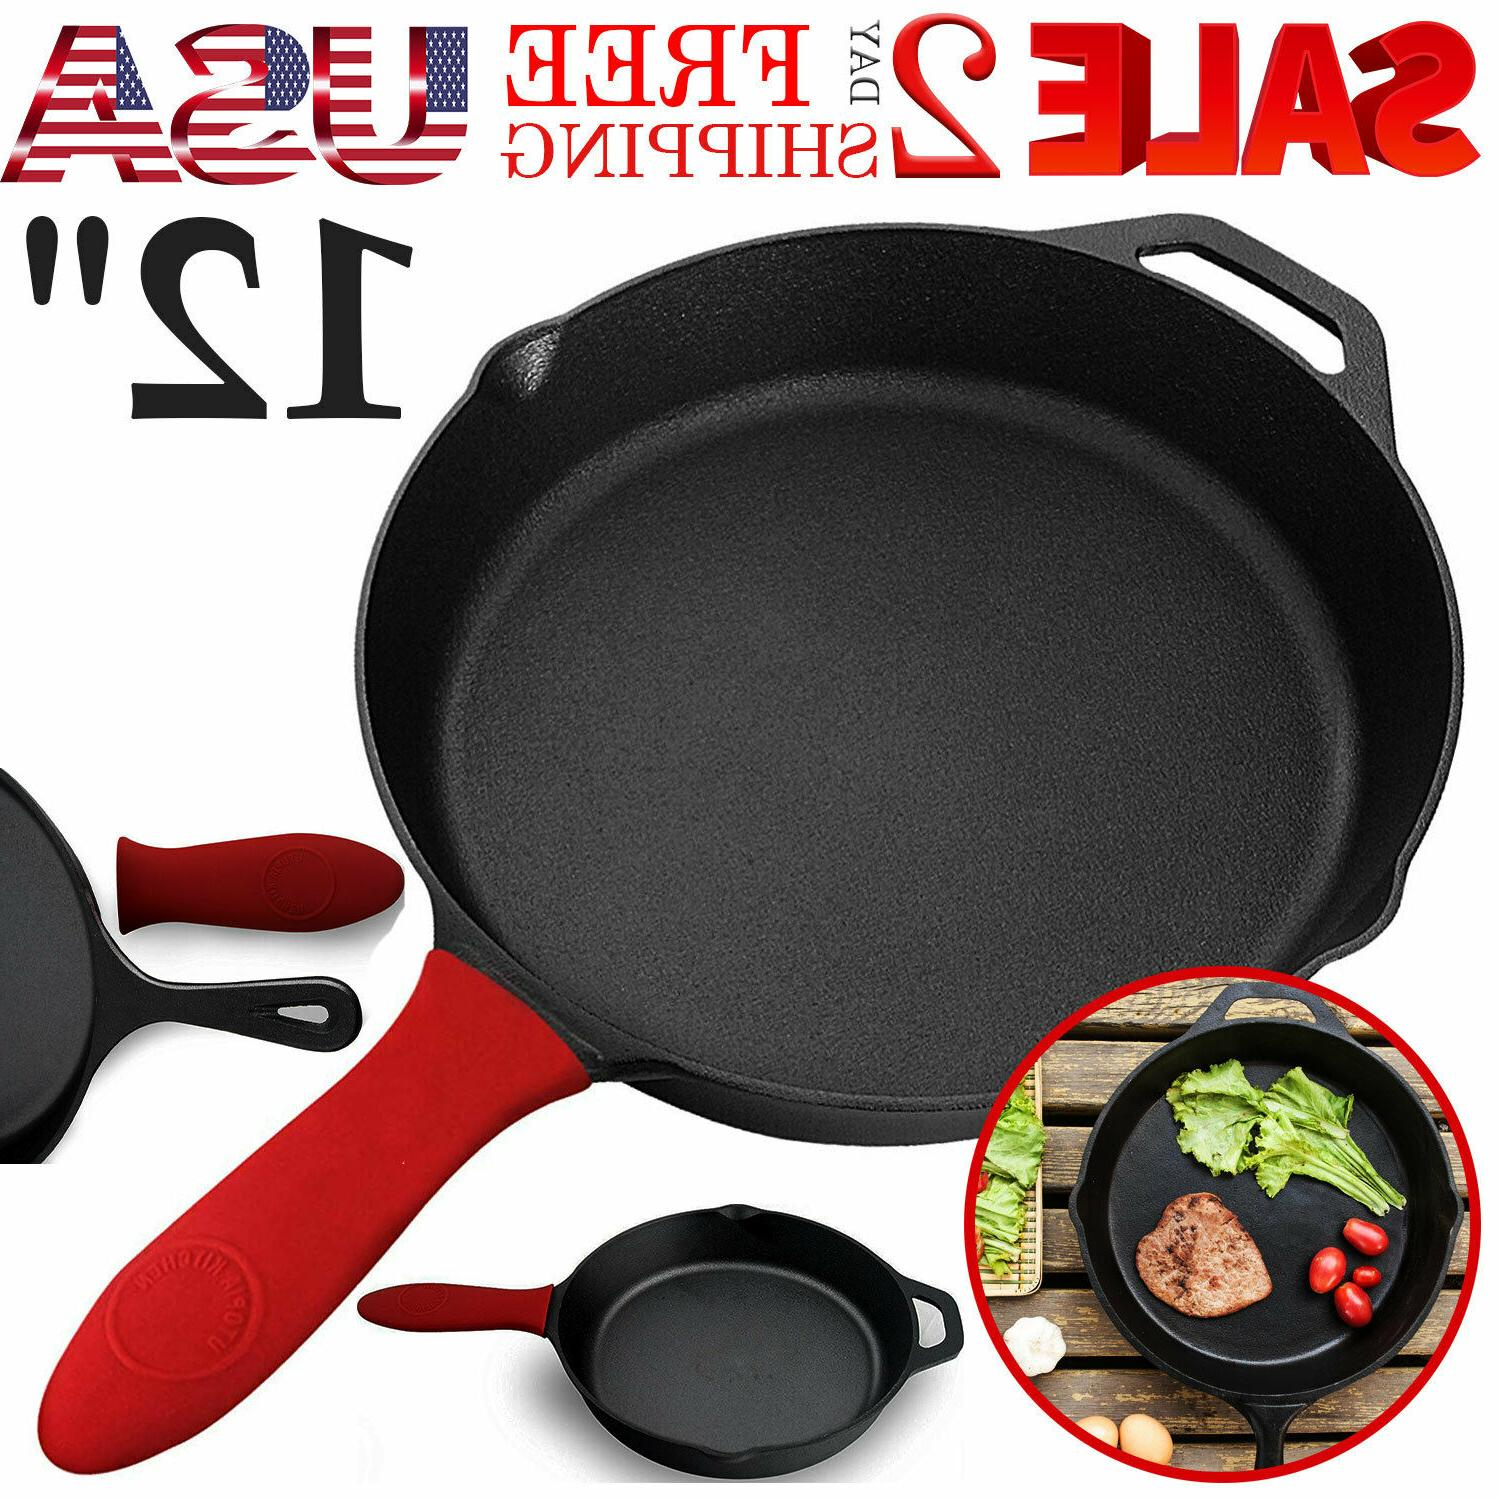 cast iron skillet 12 oven fry pan